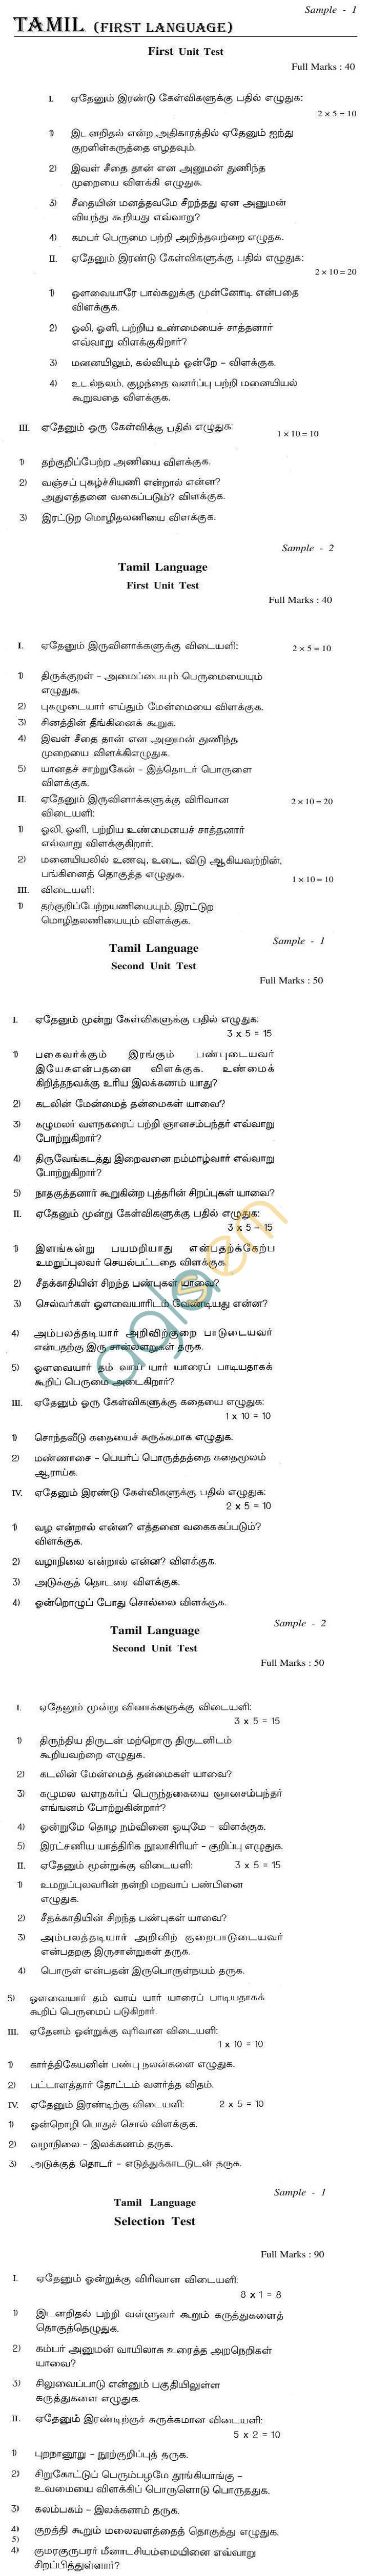 WB Board Sample Question Papers for Madhyamik Pariksha (Class 10) - Tamil